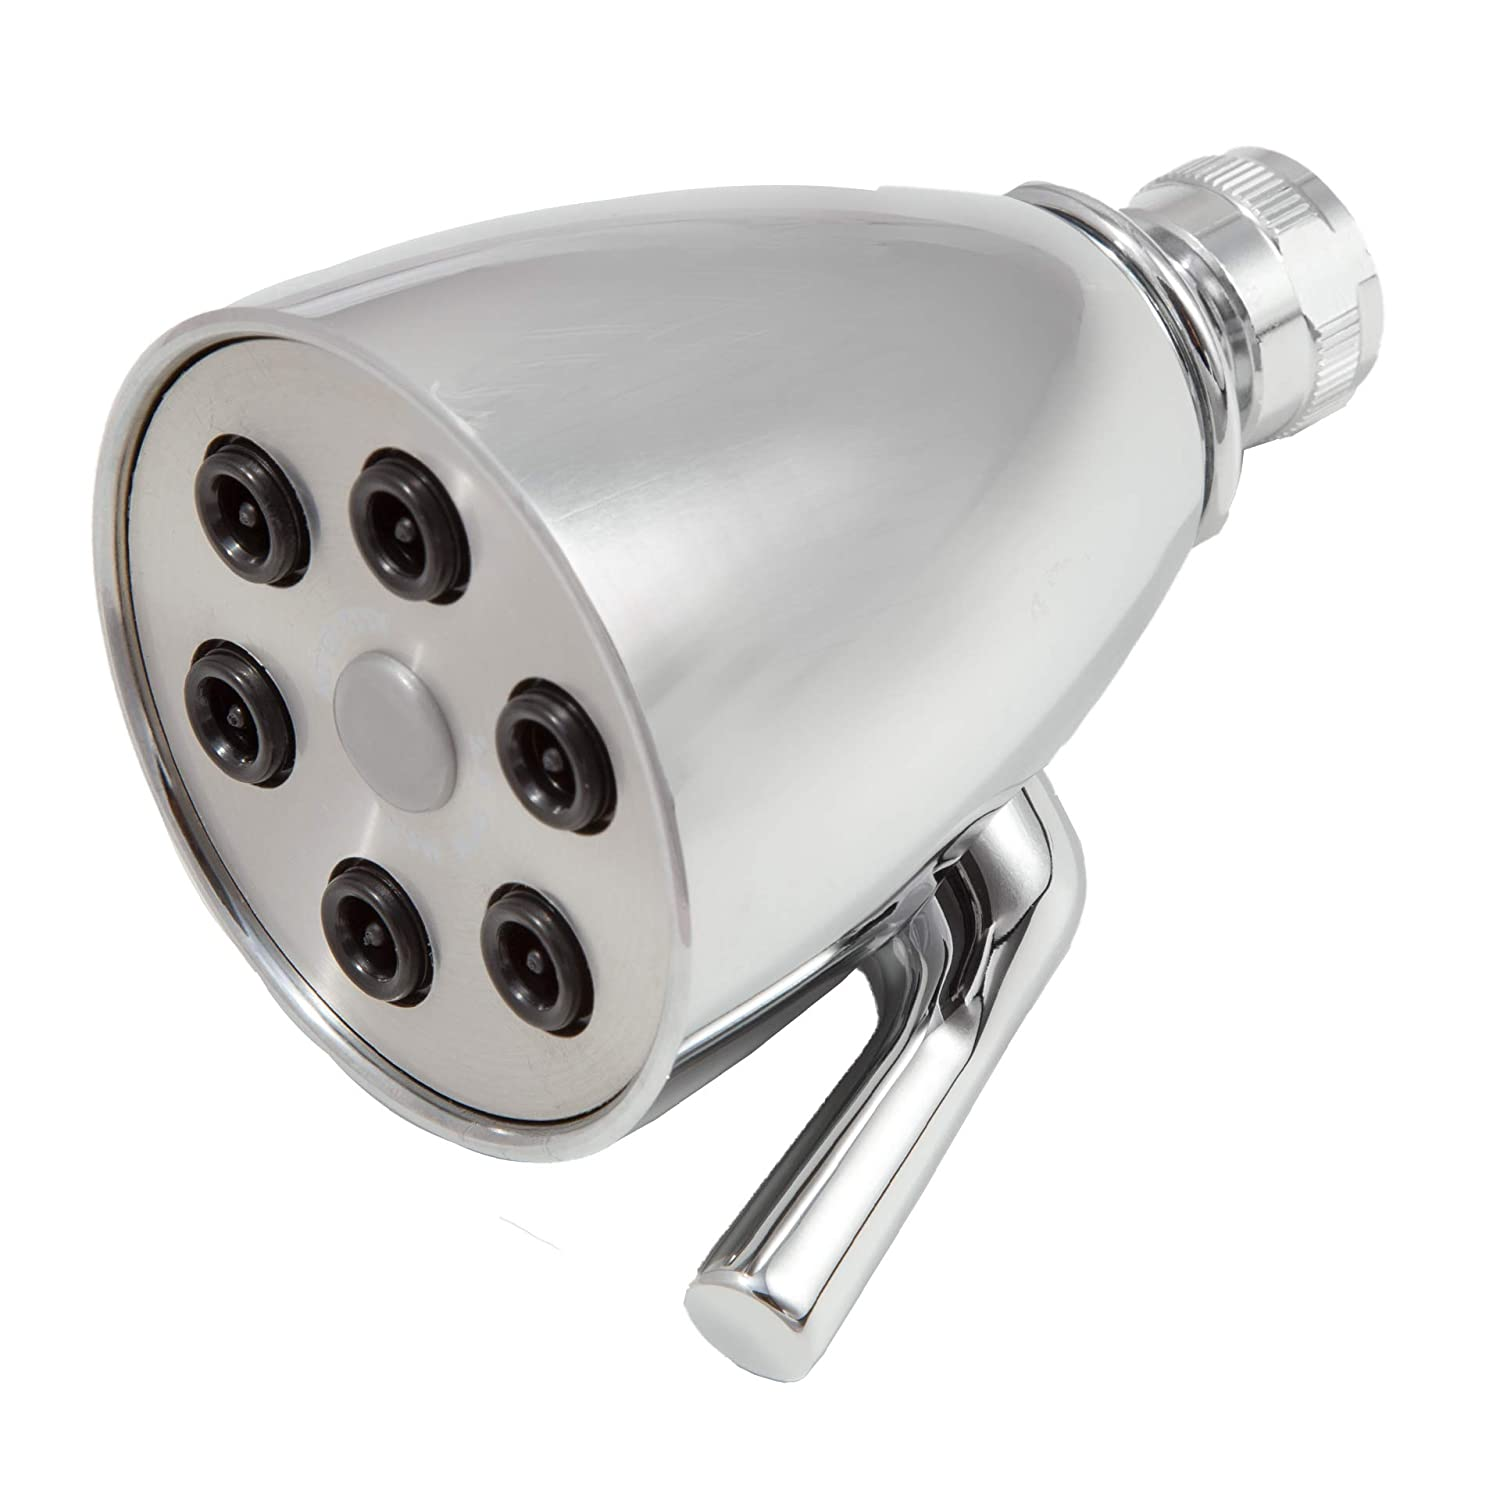 Giessdorf 6 Jet Shower Head, chrome